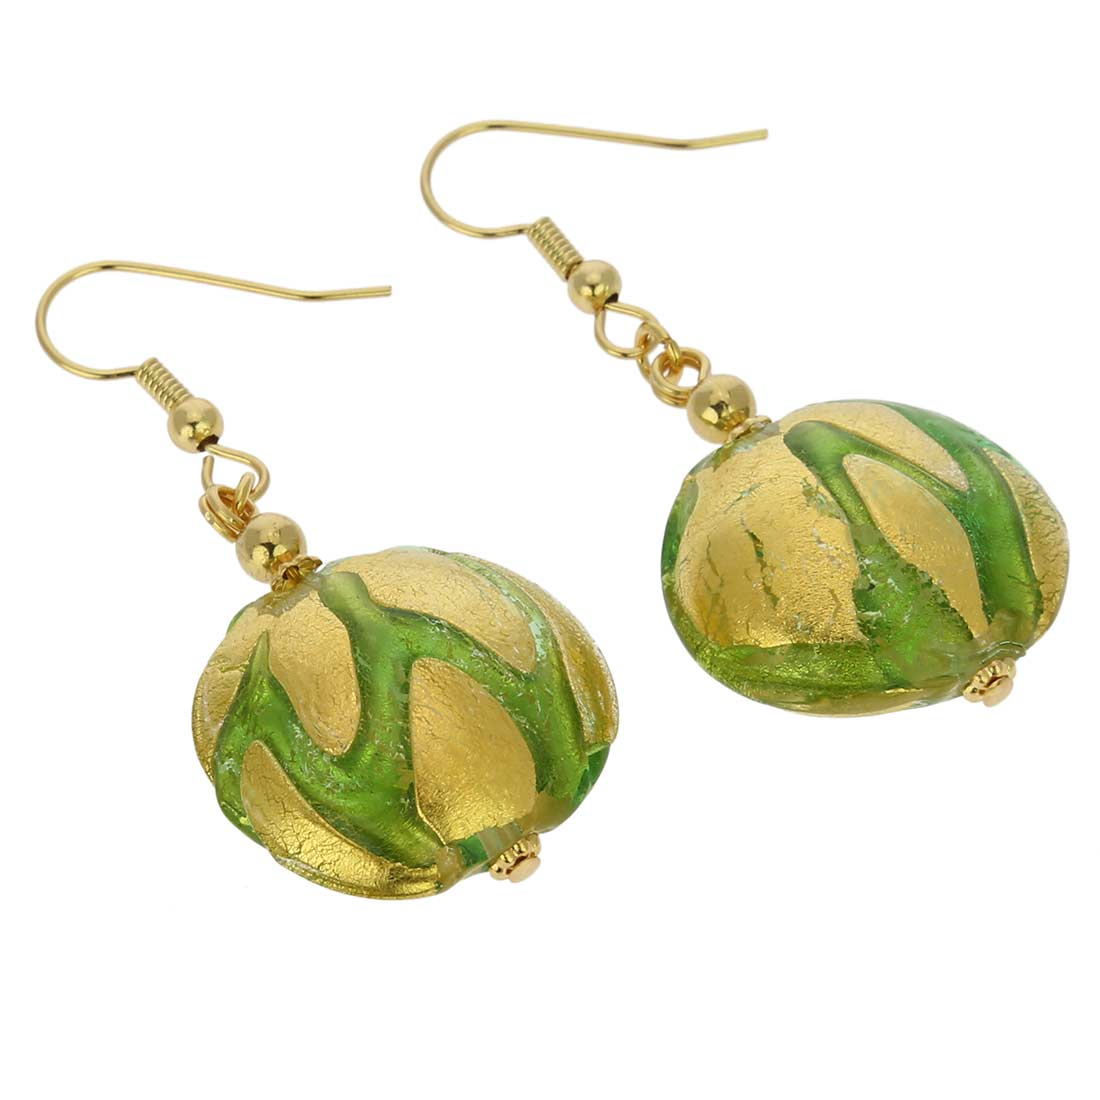 Royal Green Circles earrings